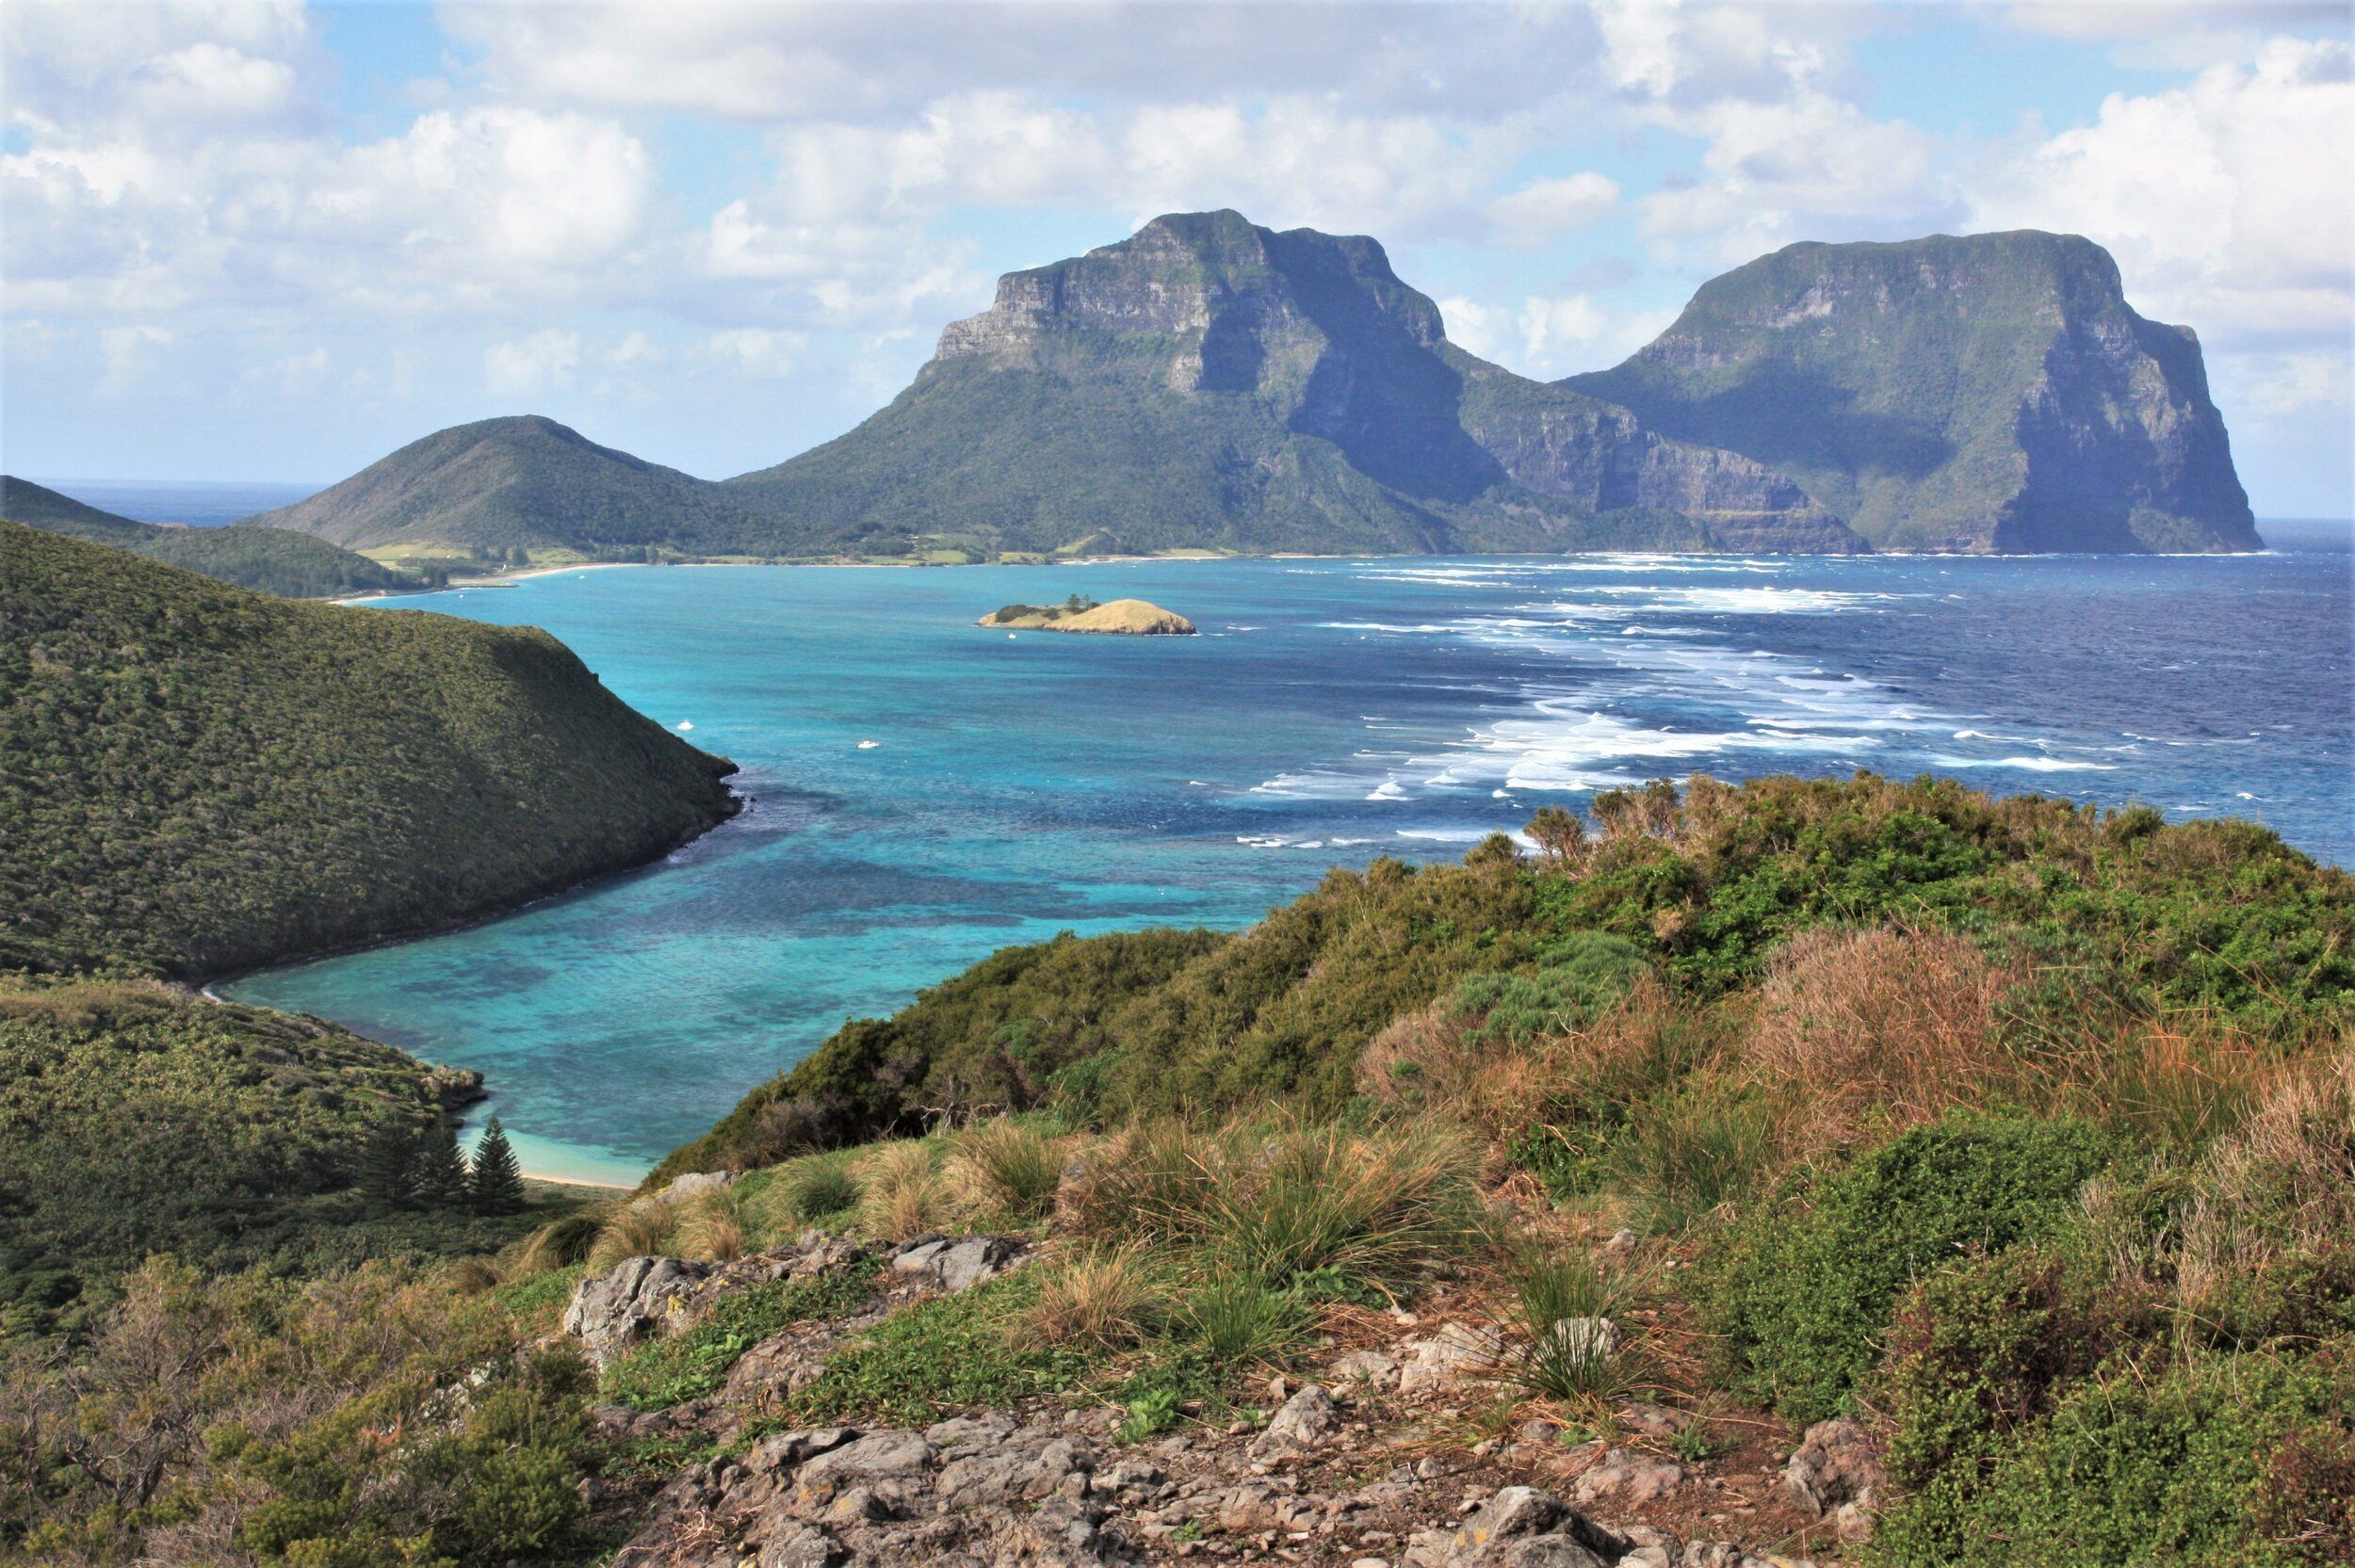 Low, scrubby lowlands of Lord Howe Island, Australia, with Mt. Gower (far right) in the distance across the lagoon.